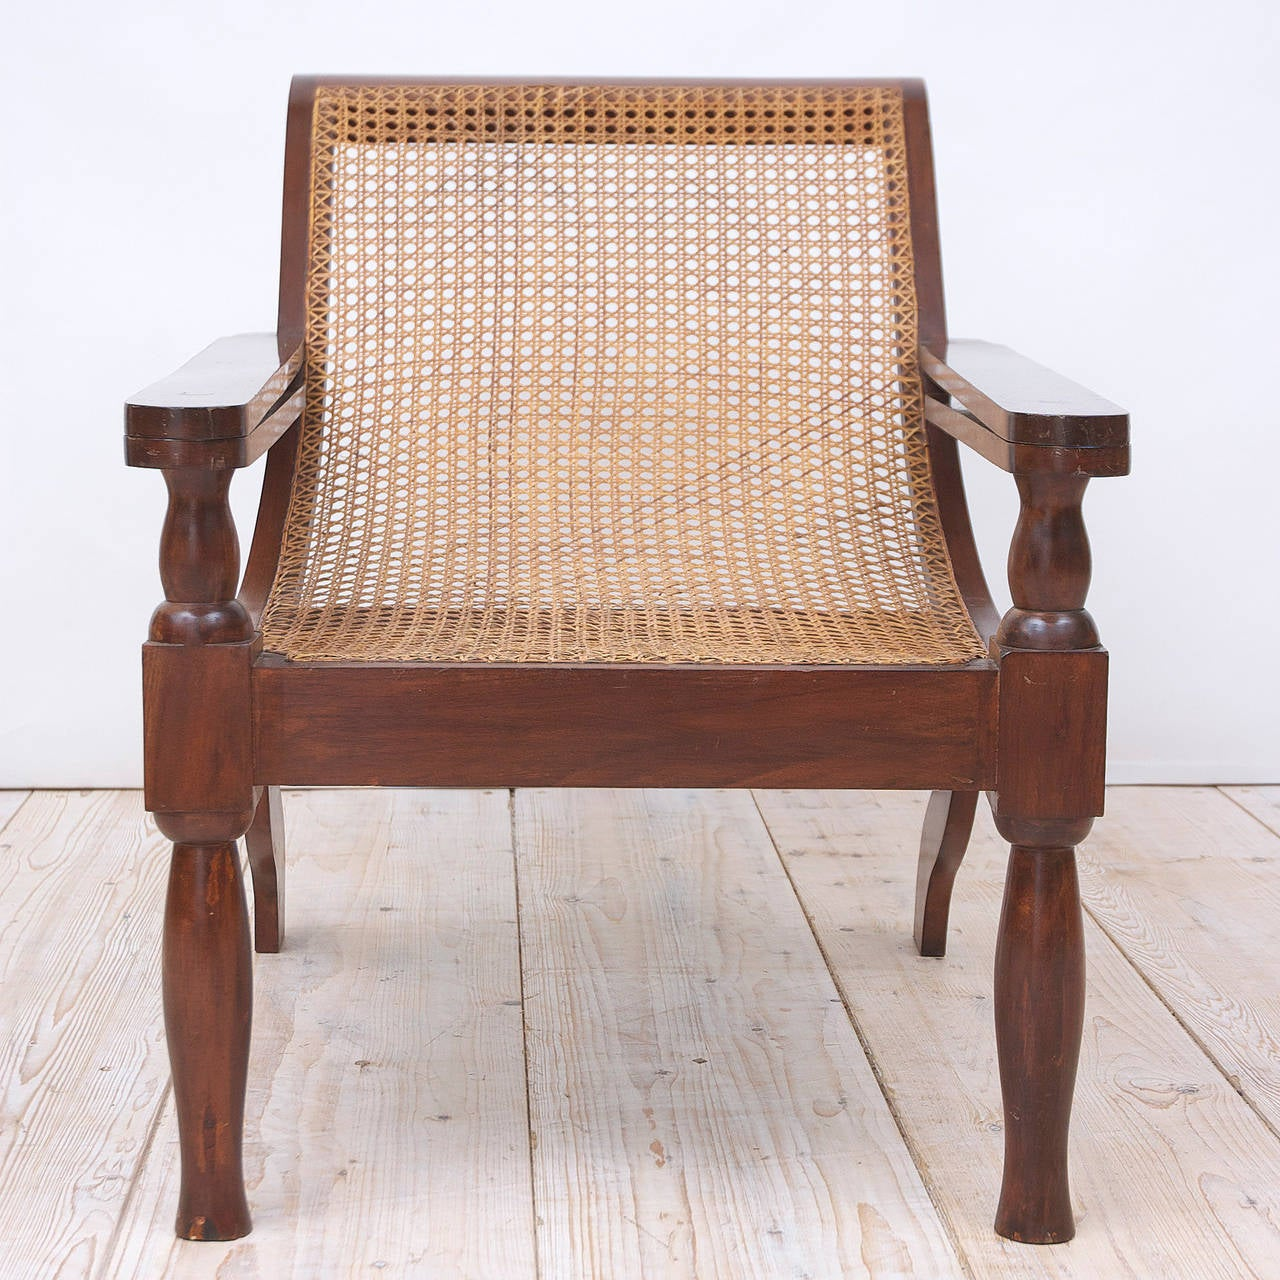 Beau British Colonial West Indies Planters Chair In Mahogany With Caning For Sale